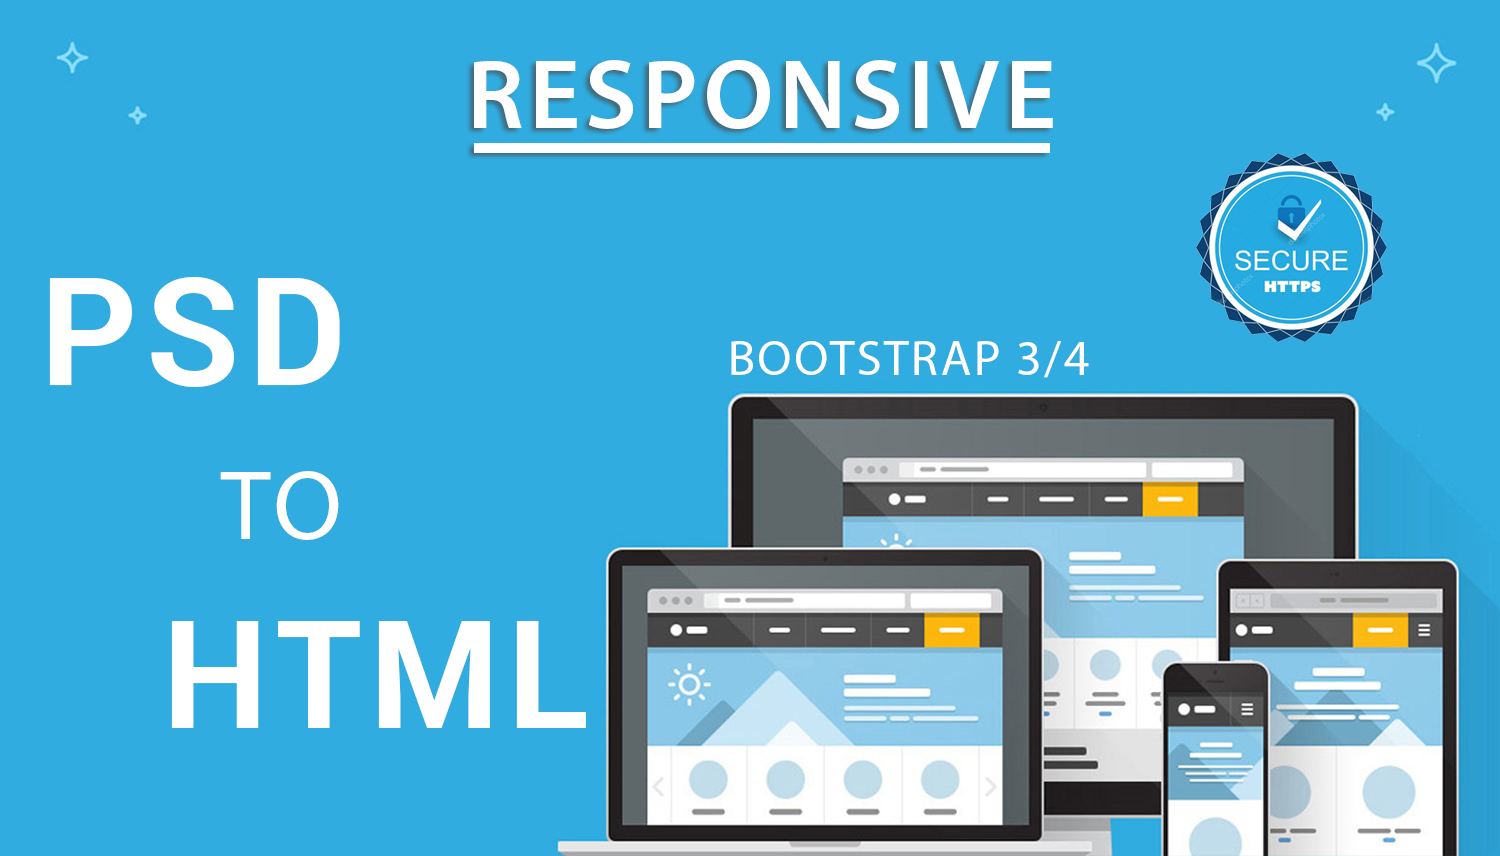 I Will convert PSD to HTML5 with CSS3 and responsive with BootStrap.